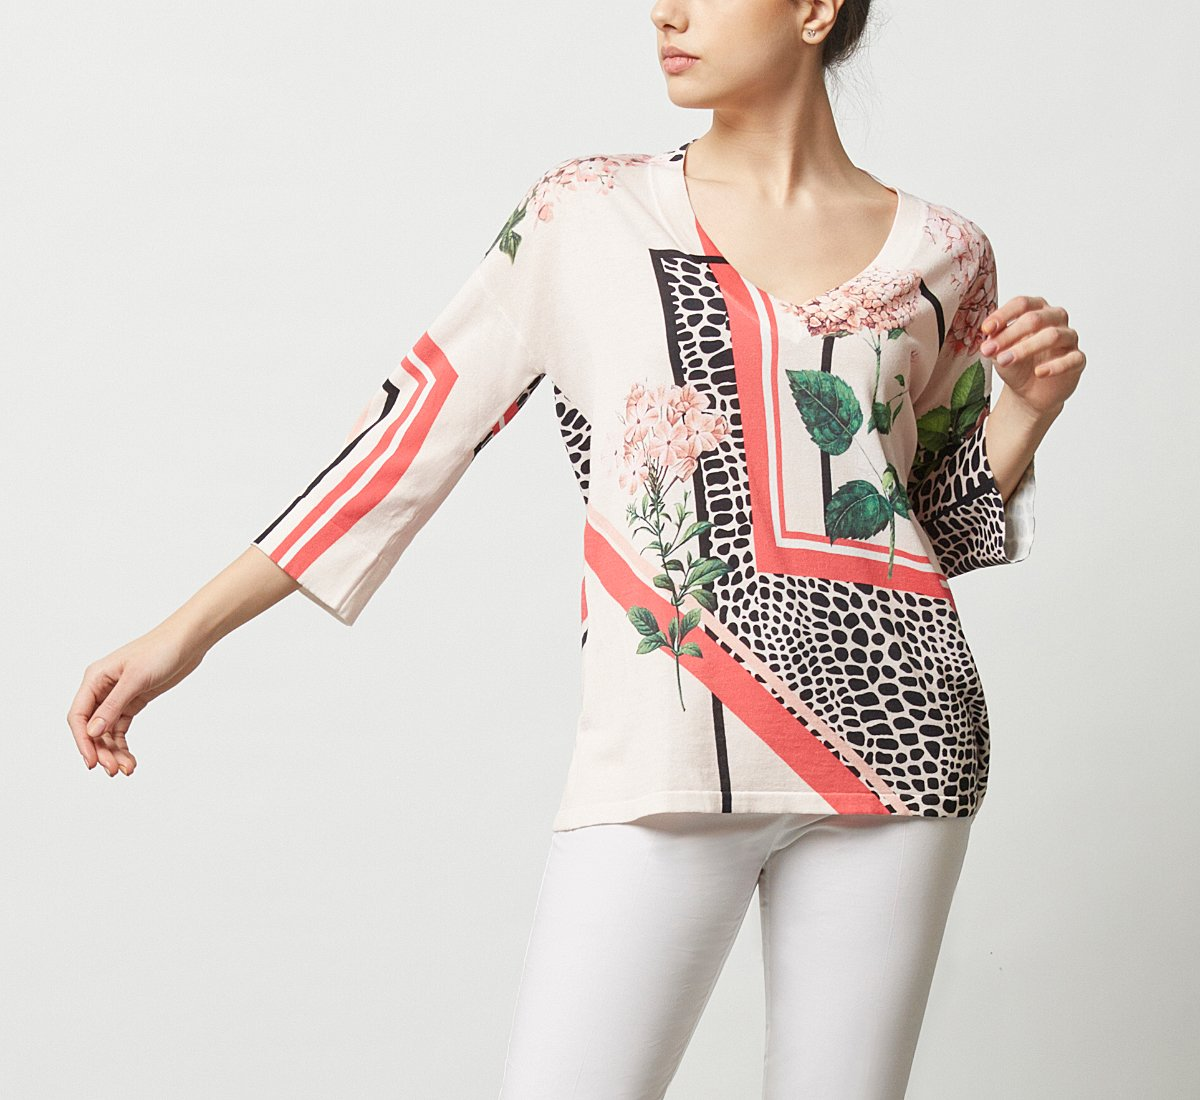 Patterned fabric sweater